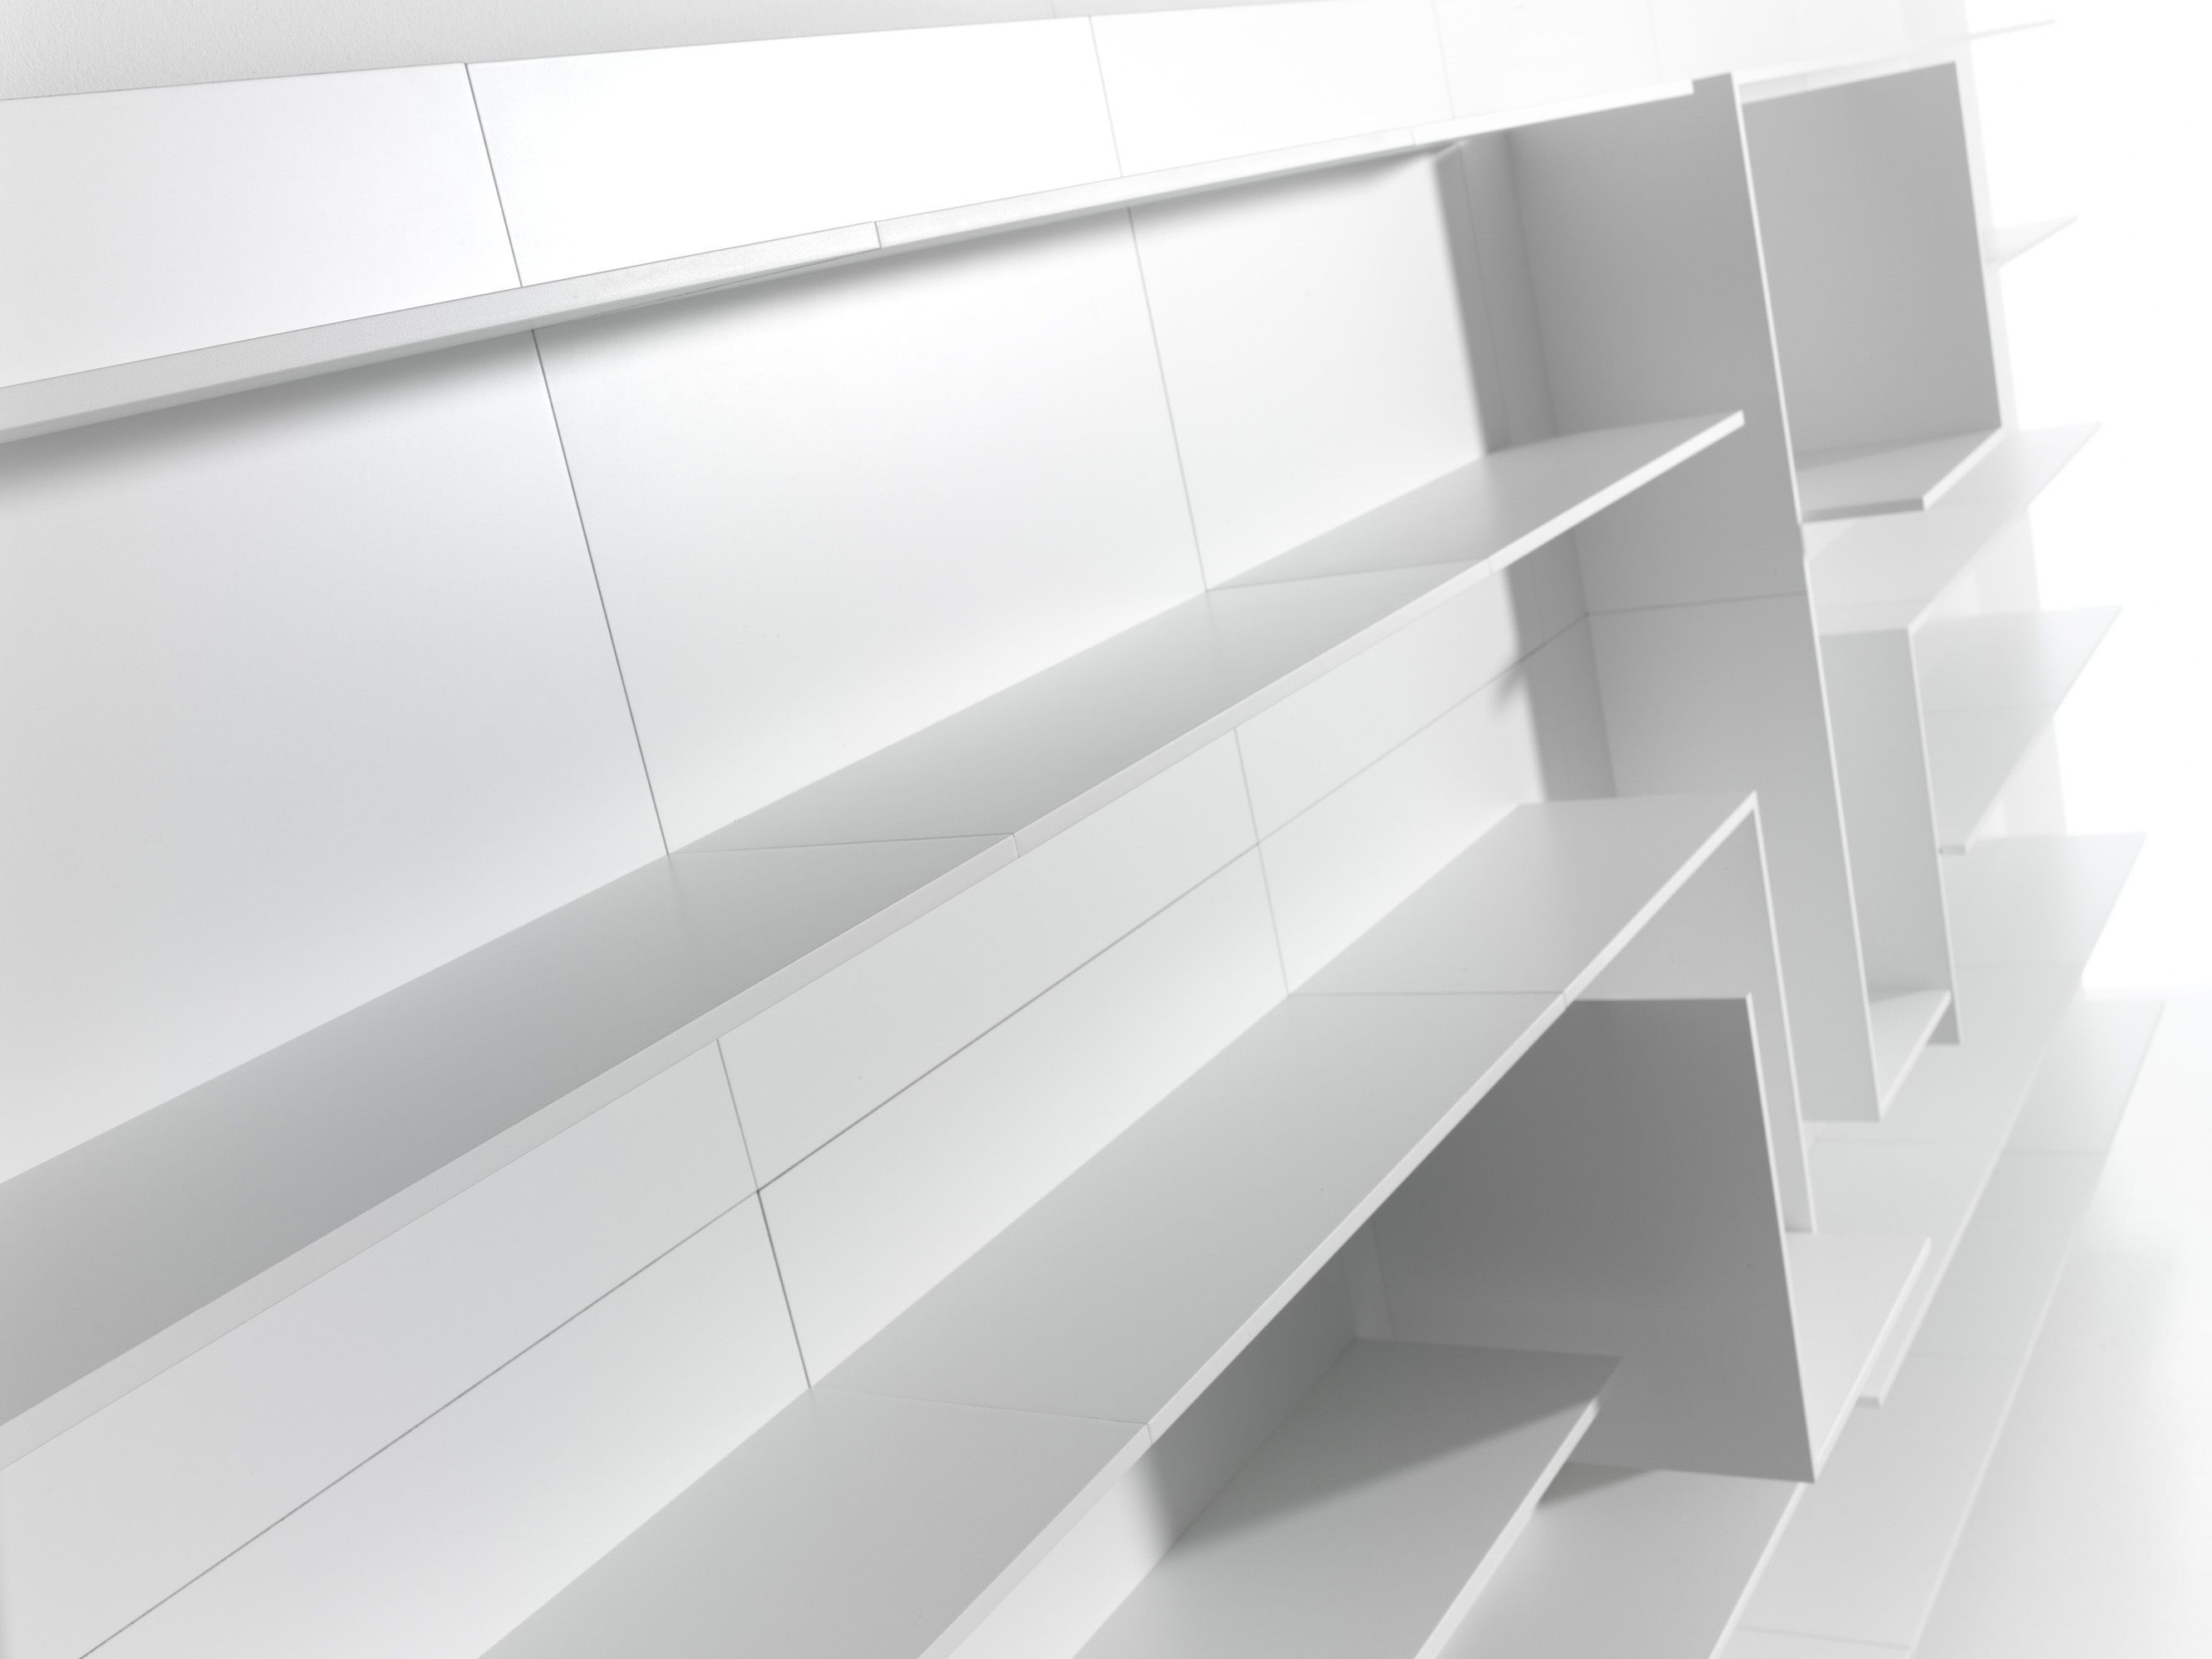 vita n 16 bookcase l 300 x h 180 cm white by mdf italia. Black Bedroom Furniture Sets. Home Design Ideas